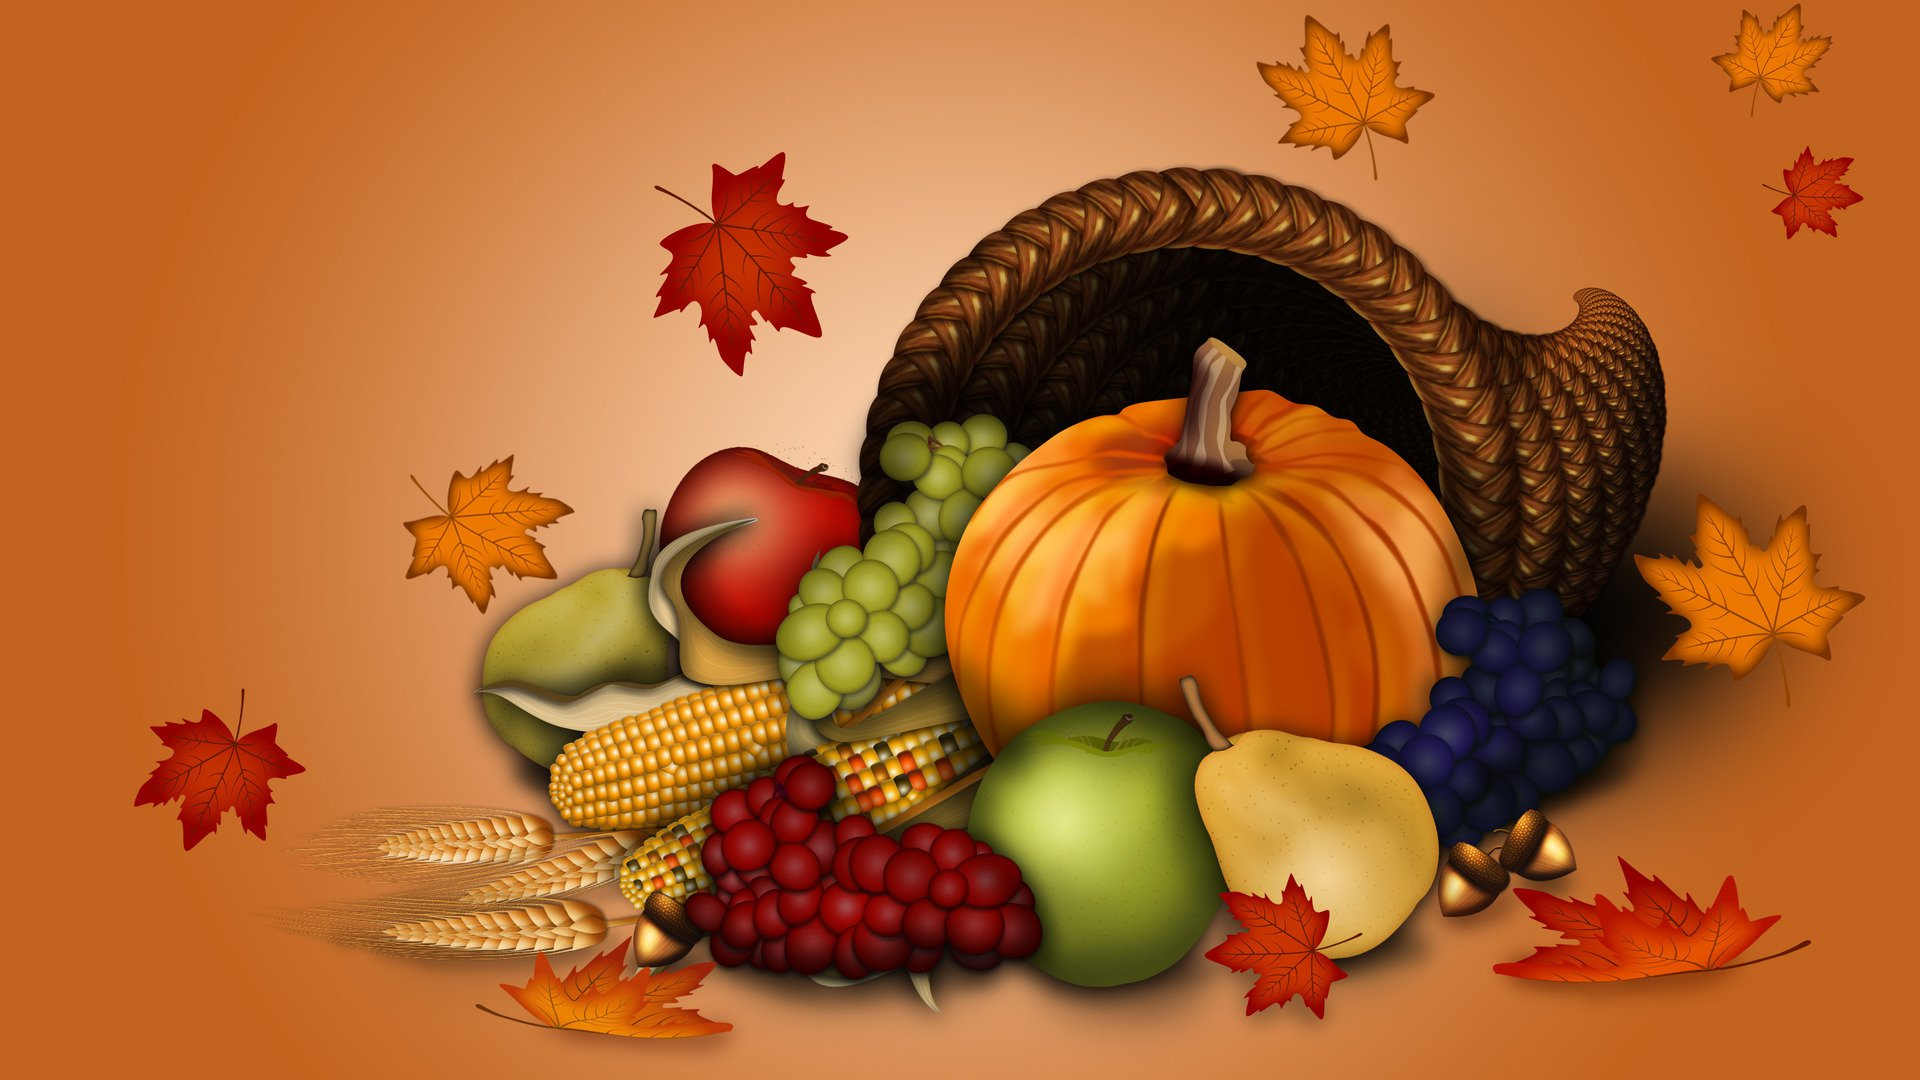 Happy Thanksgiving Images Download